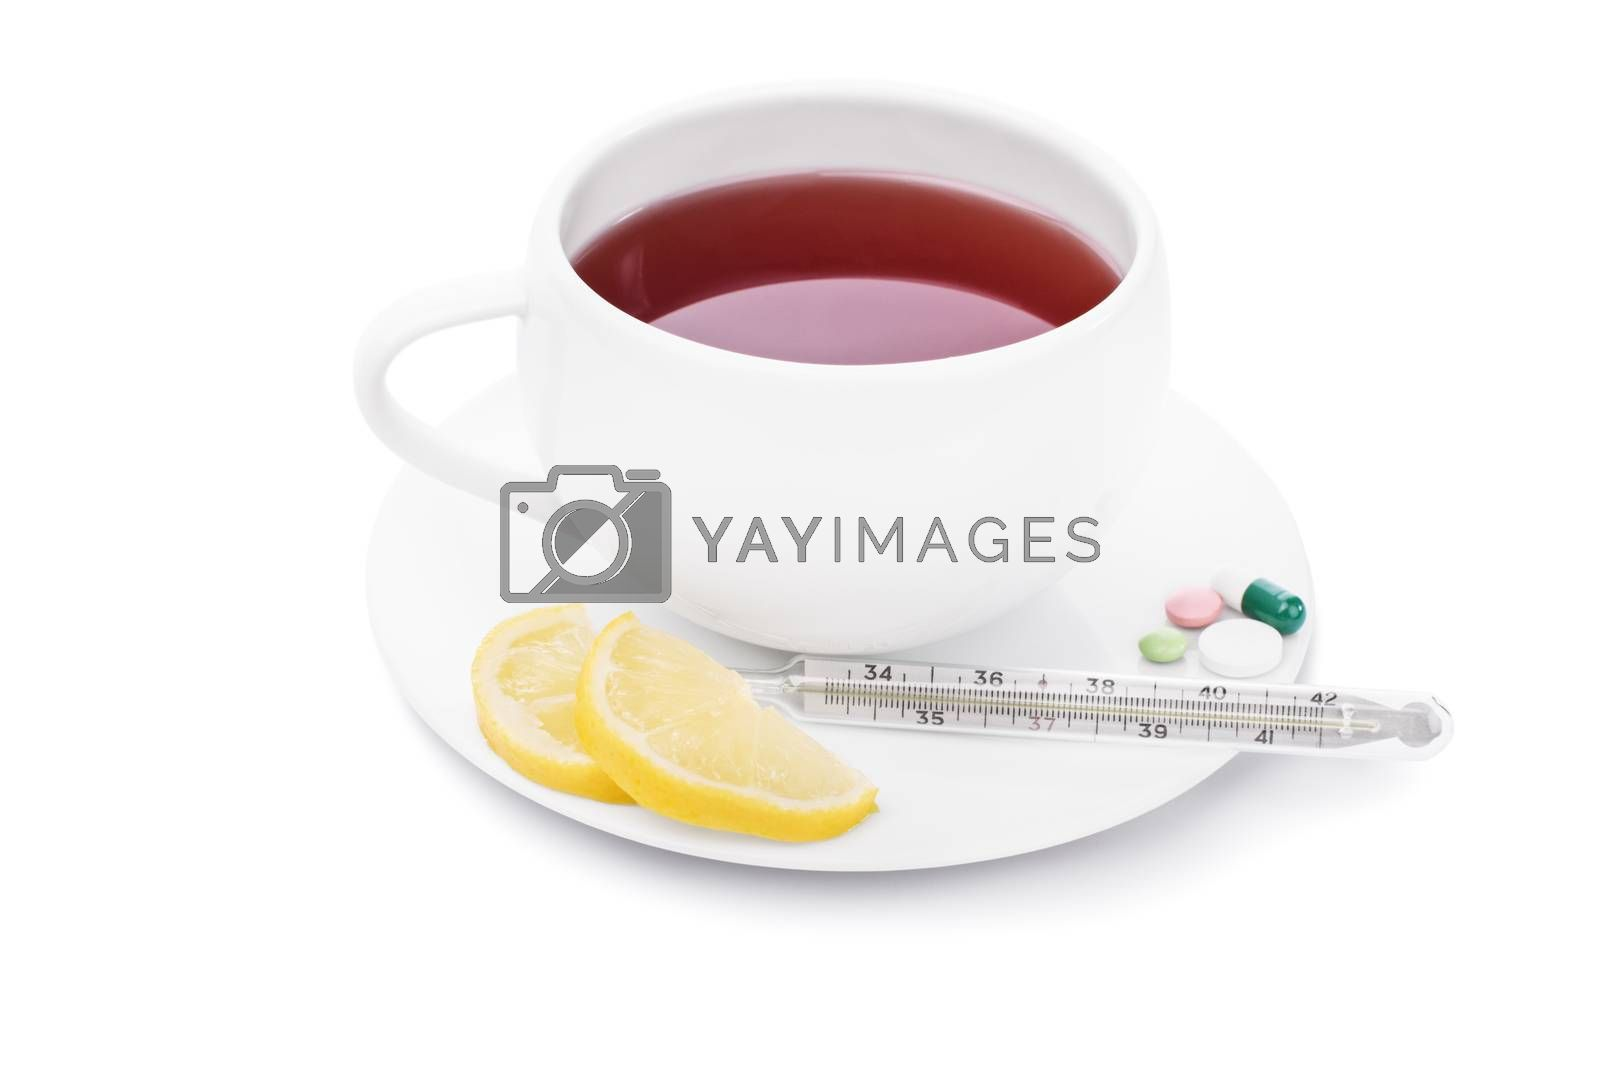 Tea with lemon, pills and thermometer, isolated on white background.